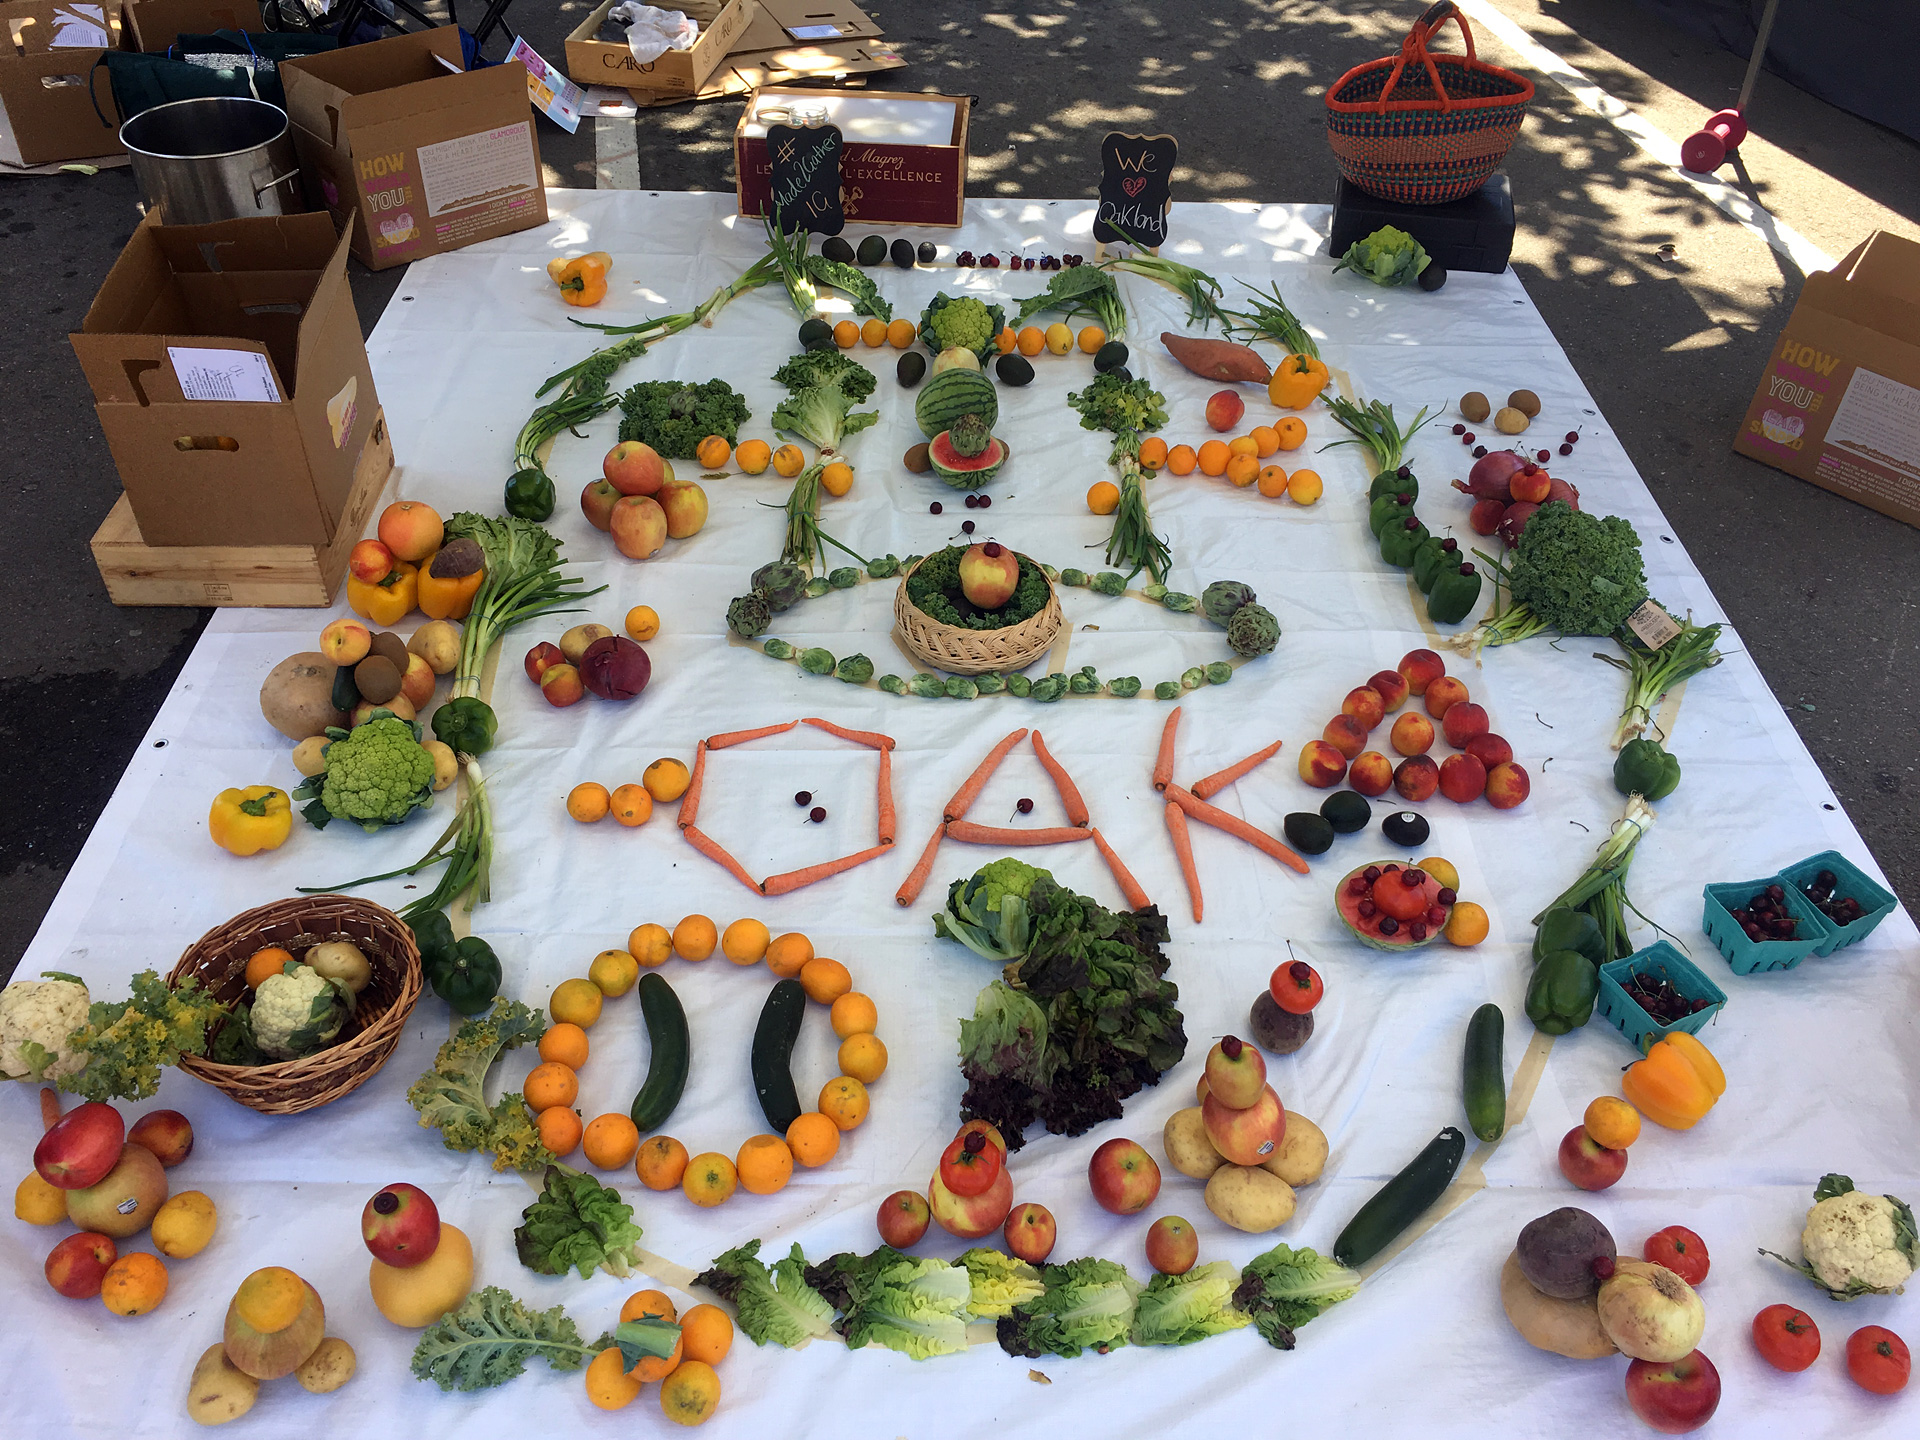 Chef Lee Davidson led a group of people in making this food mandala at Oakland's Eastlake Music Festival.